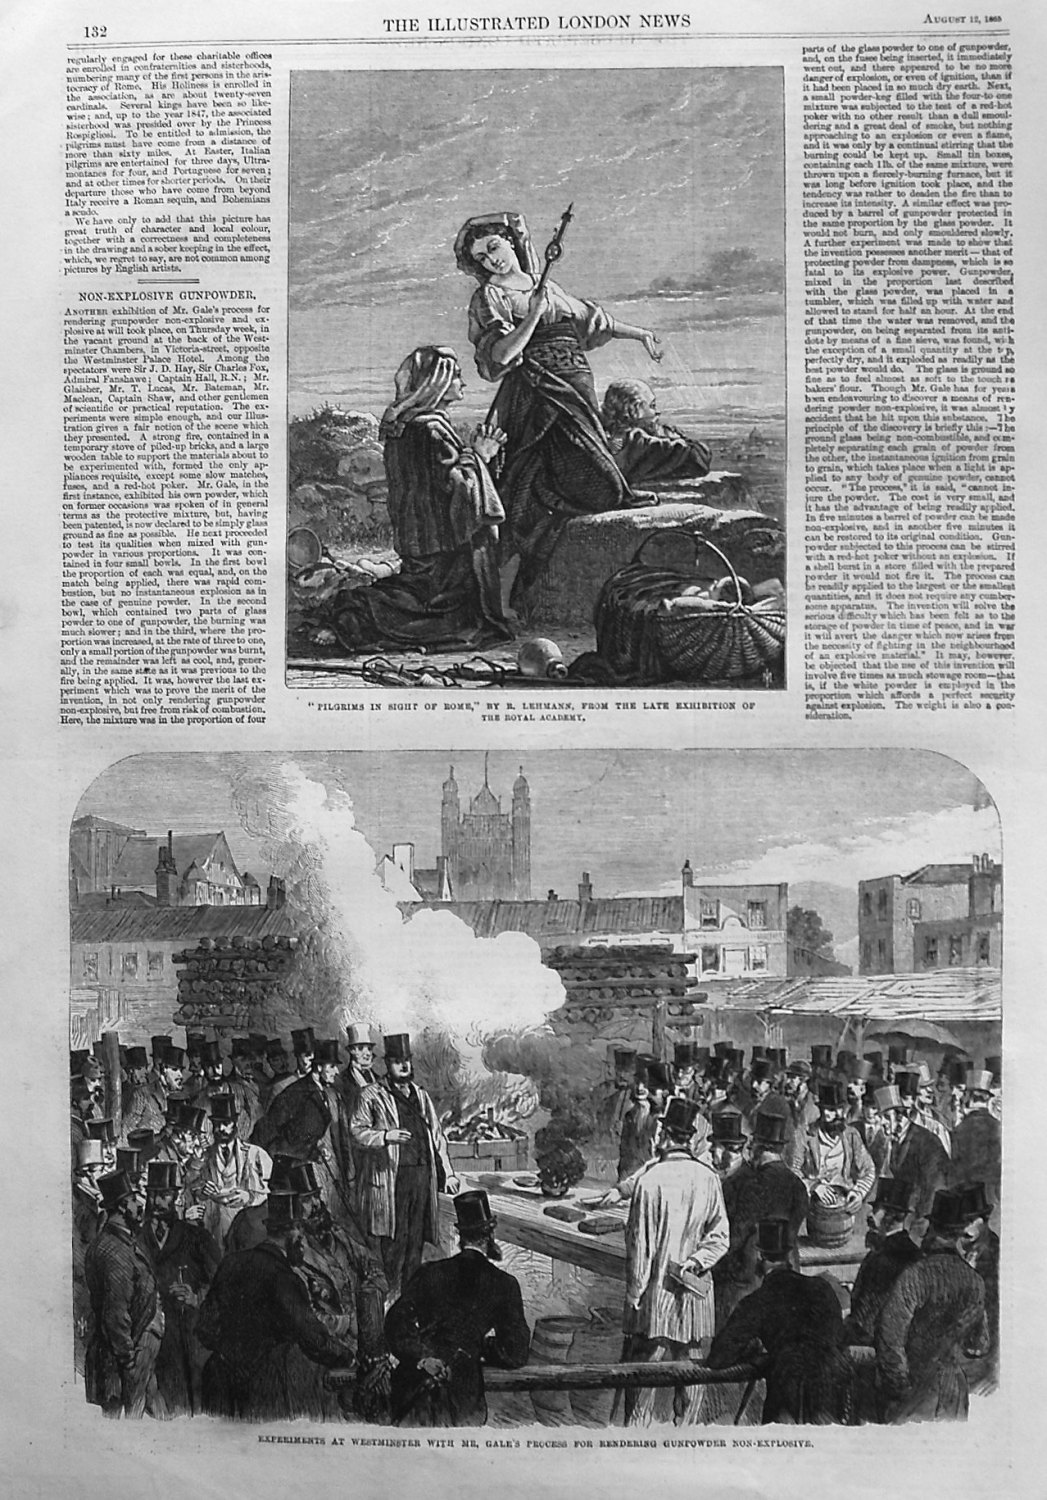 Experiments at westminster with Mr. Gale's Process for Rendering Gunpowder